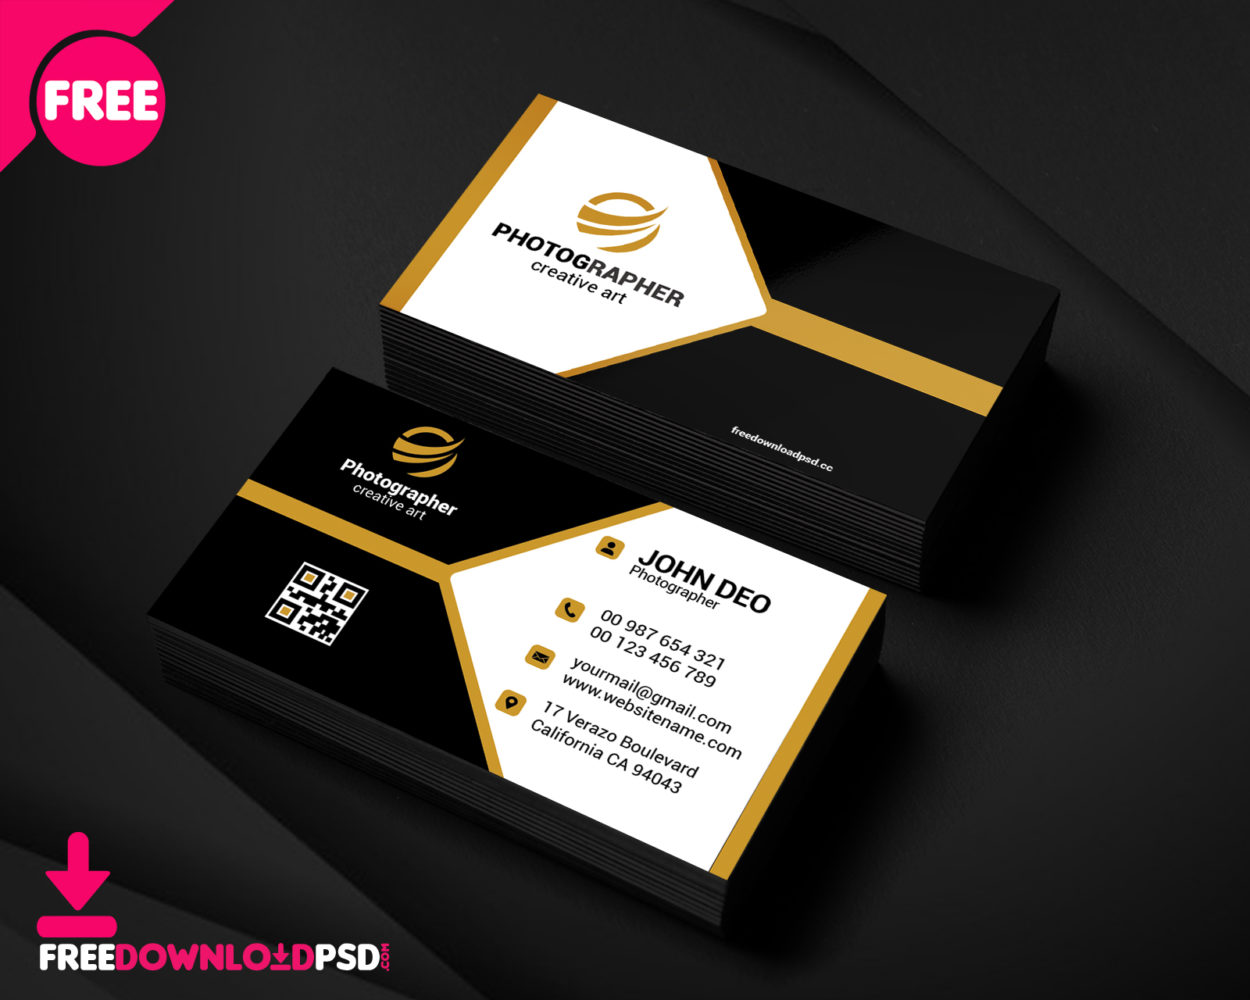 free sample photography business card  freedownloadpsd